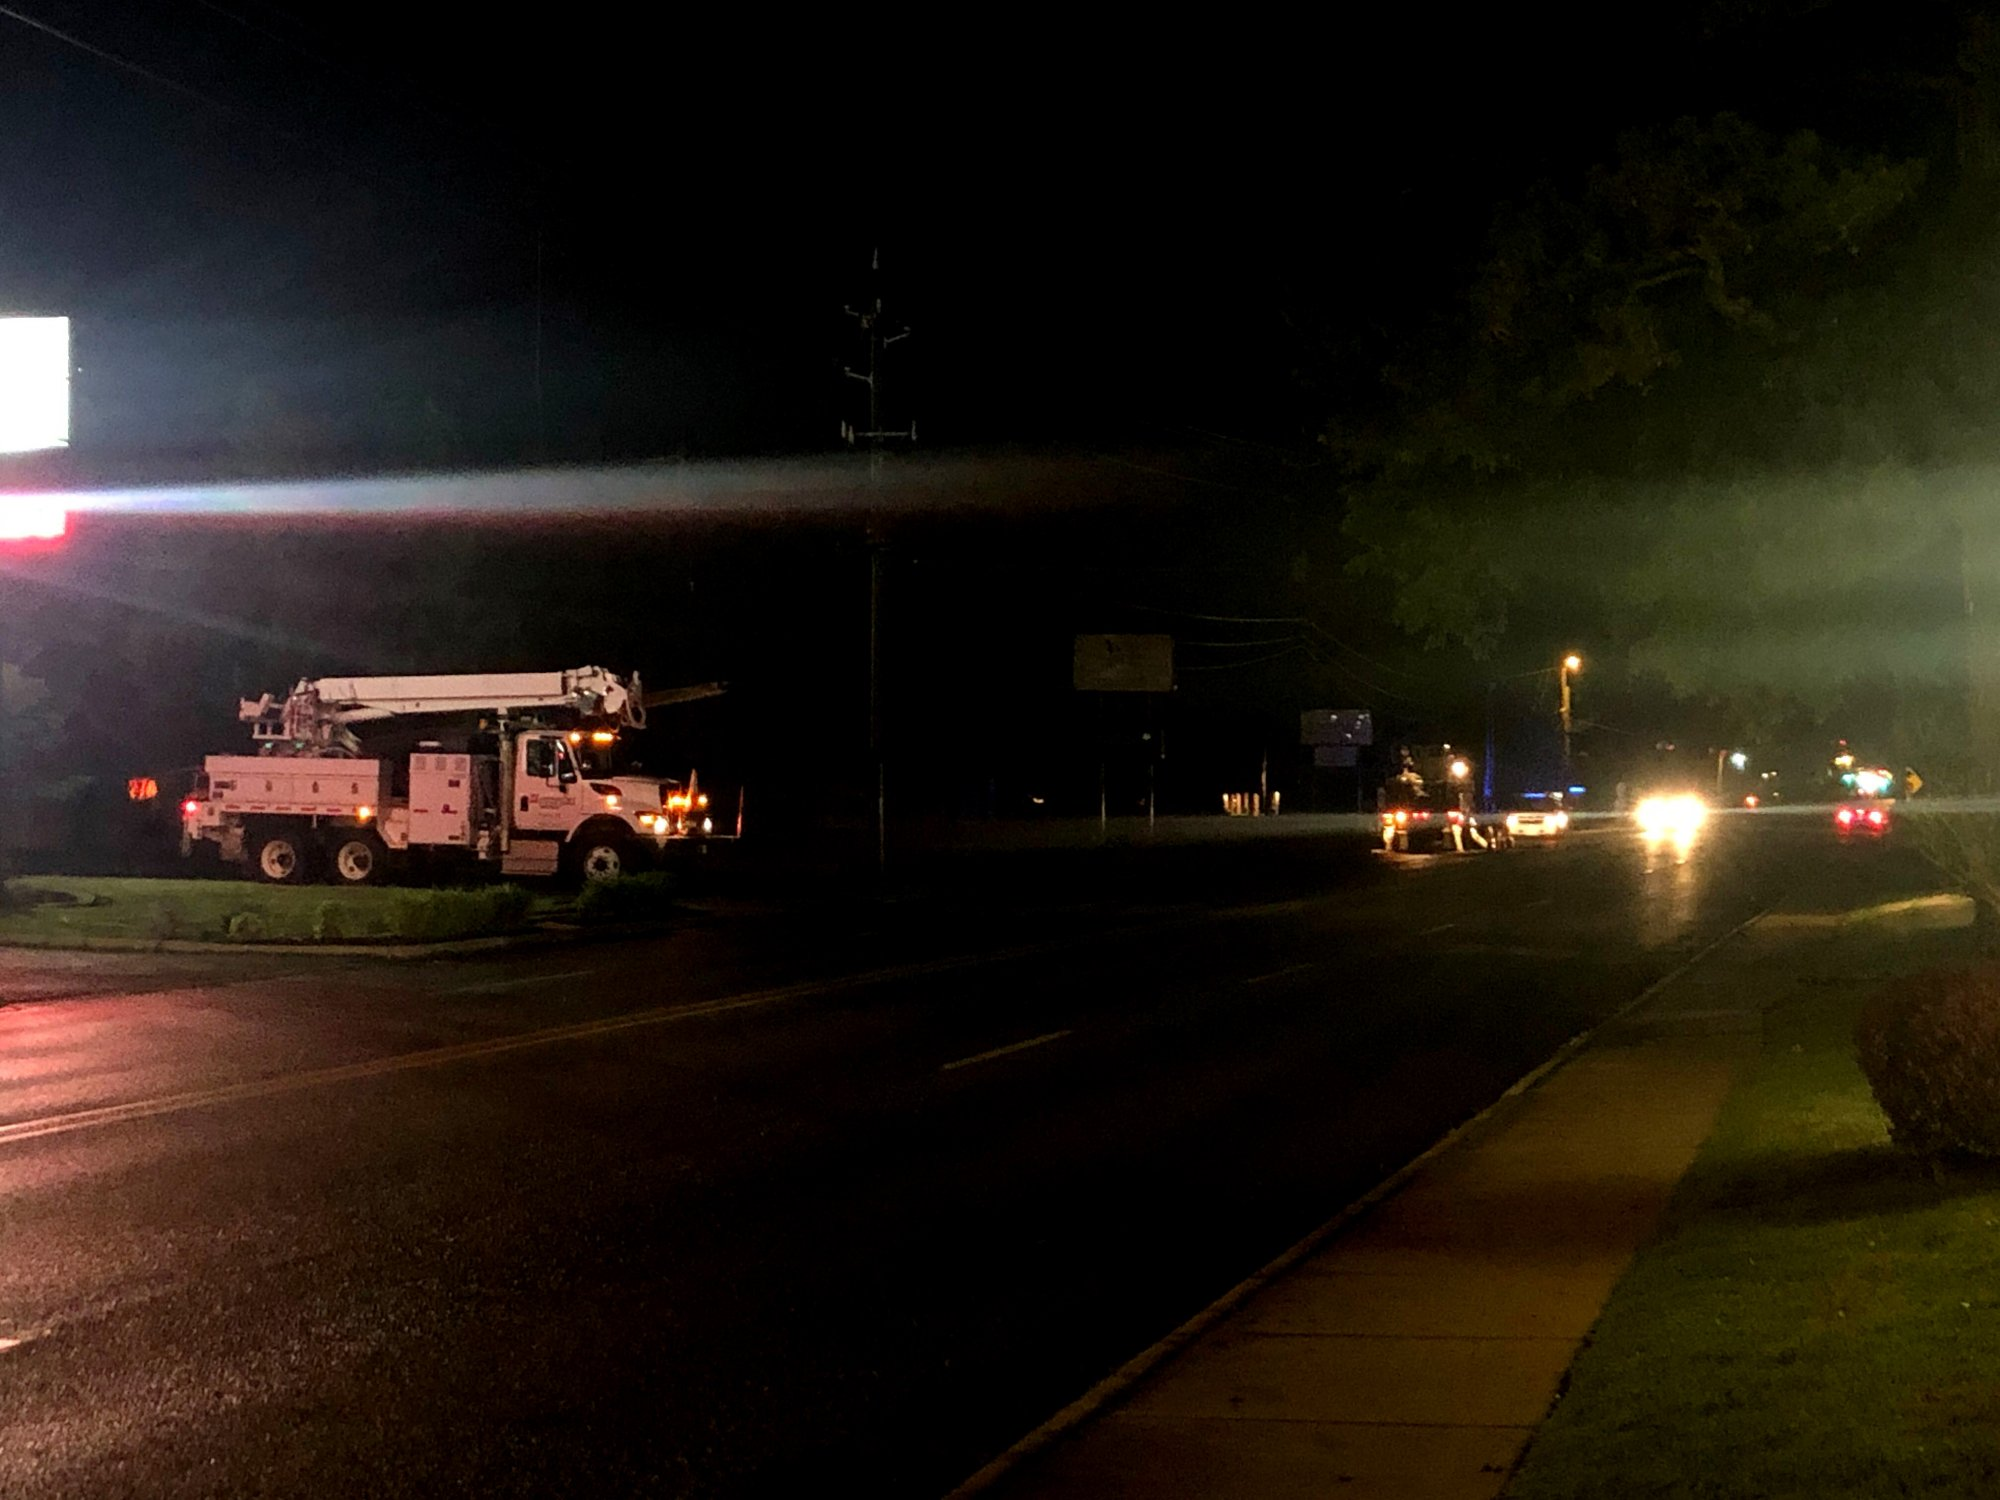 Crews from SWEPCO work to restore power along 13th Street in Rogers on Thursday, May 2, 2019. (KFSM)